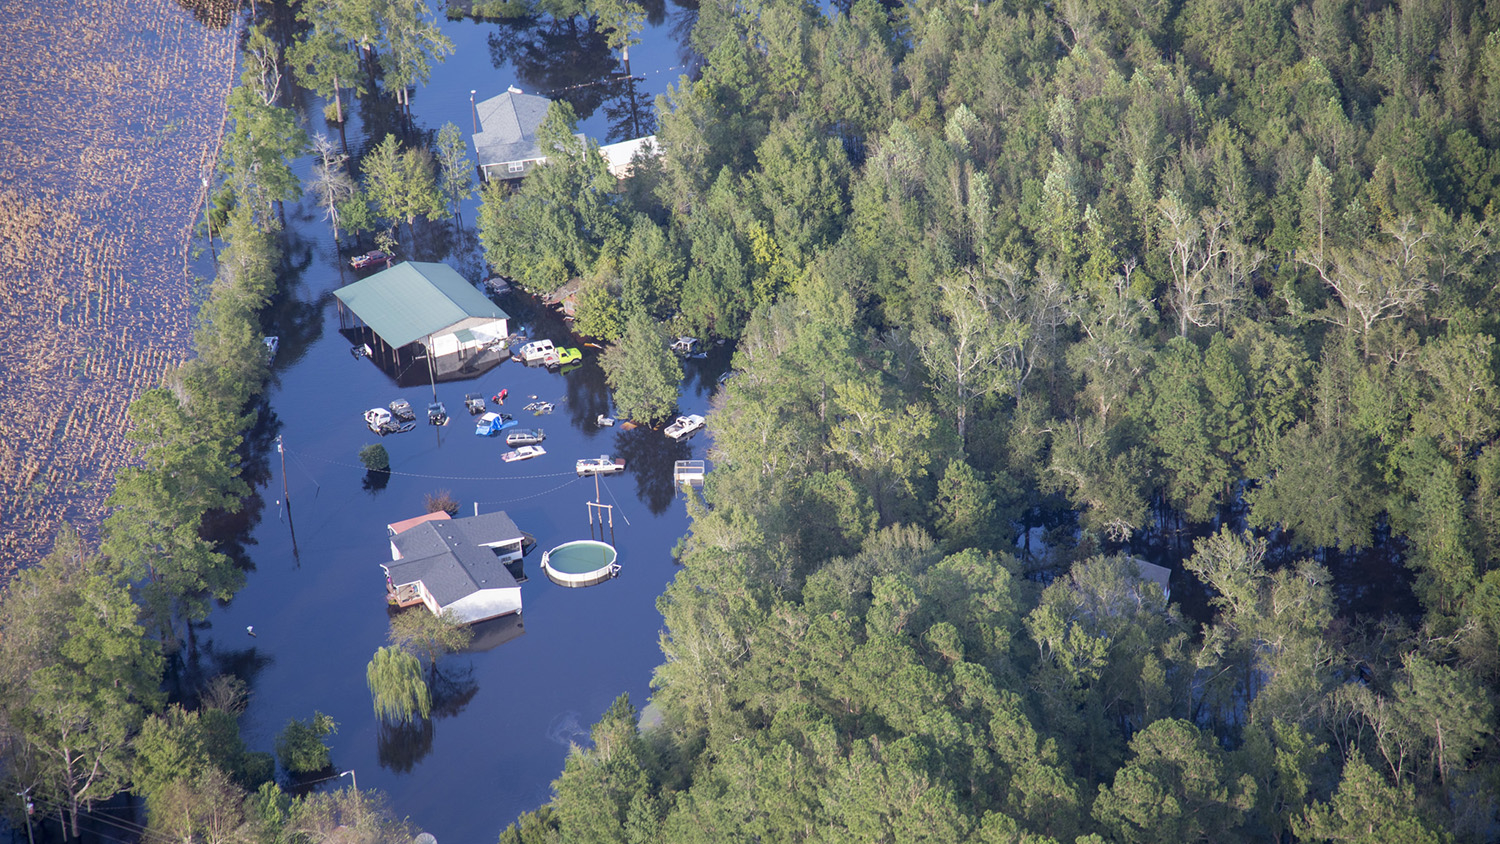 aerial view of flooded homes and forest